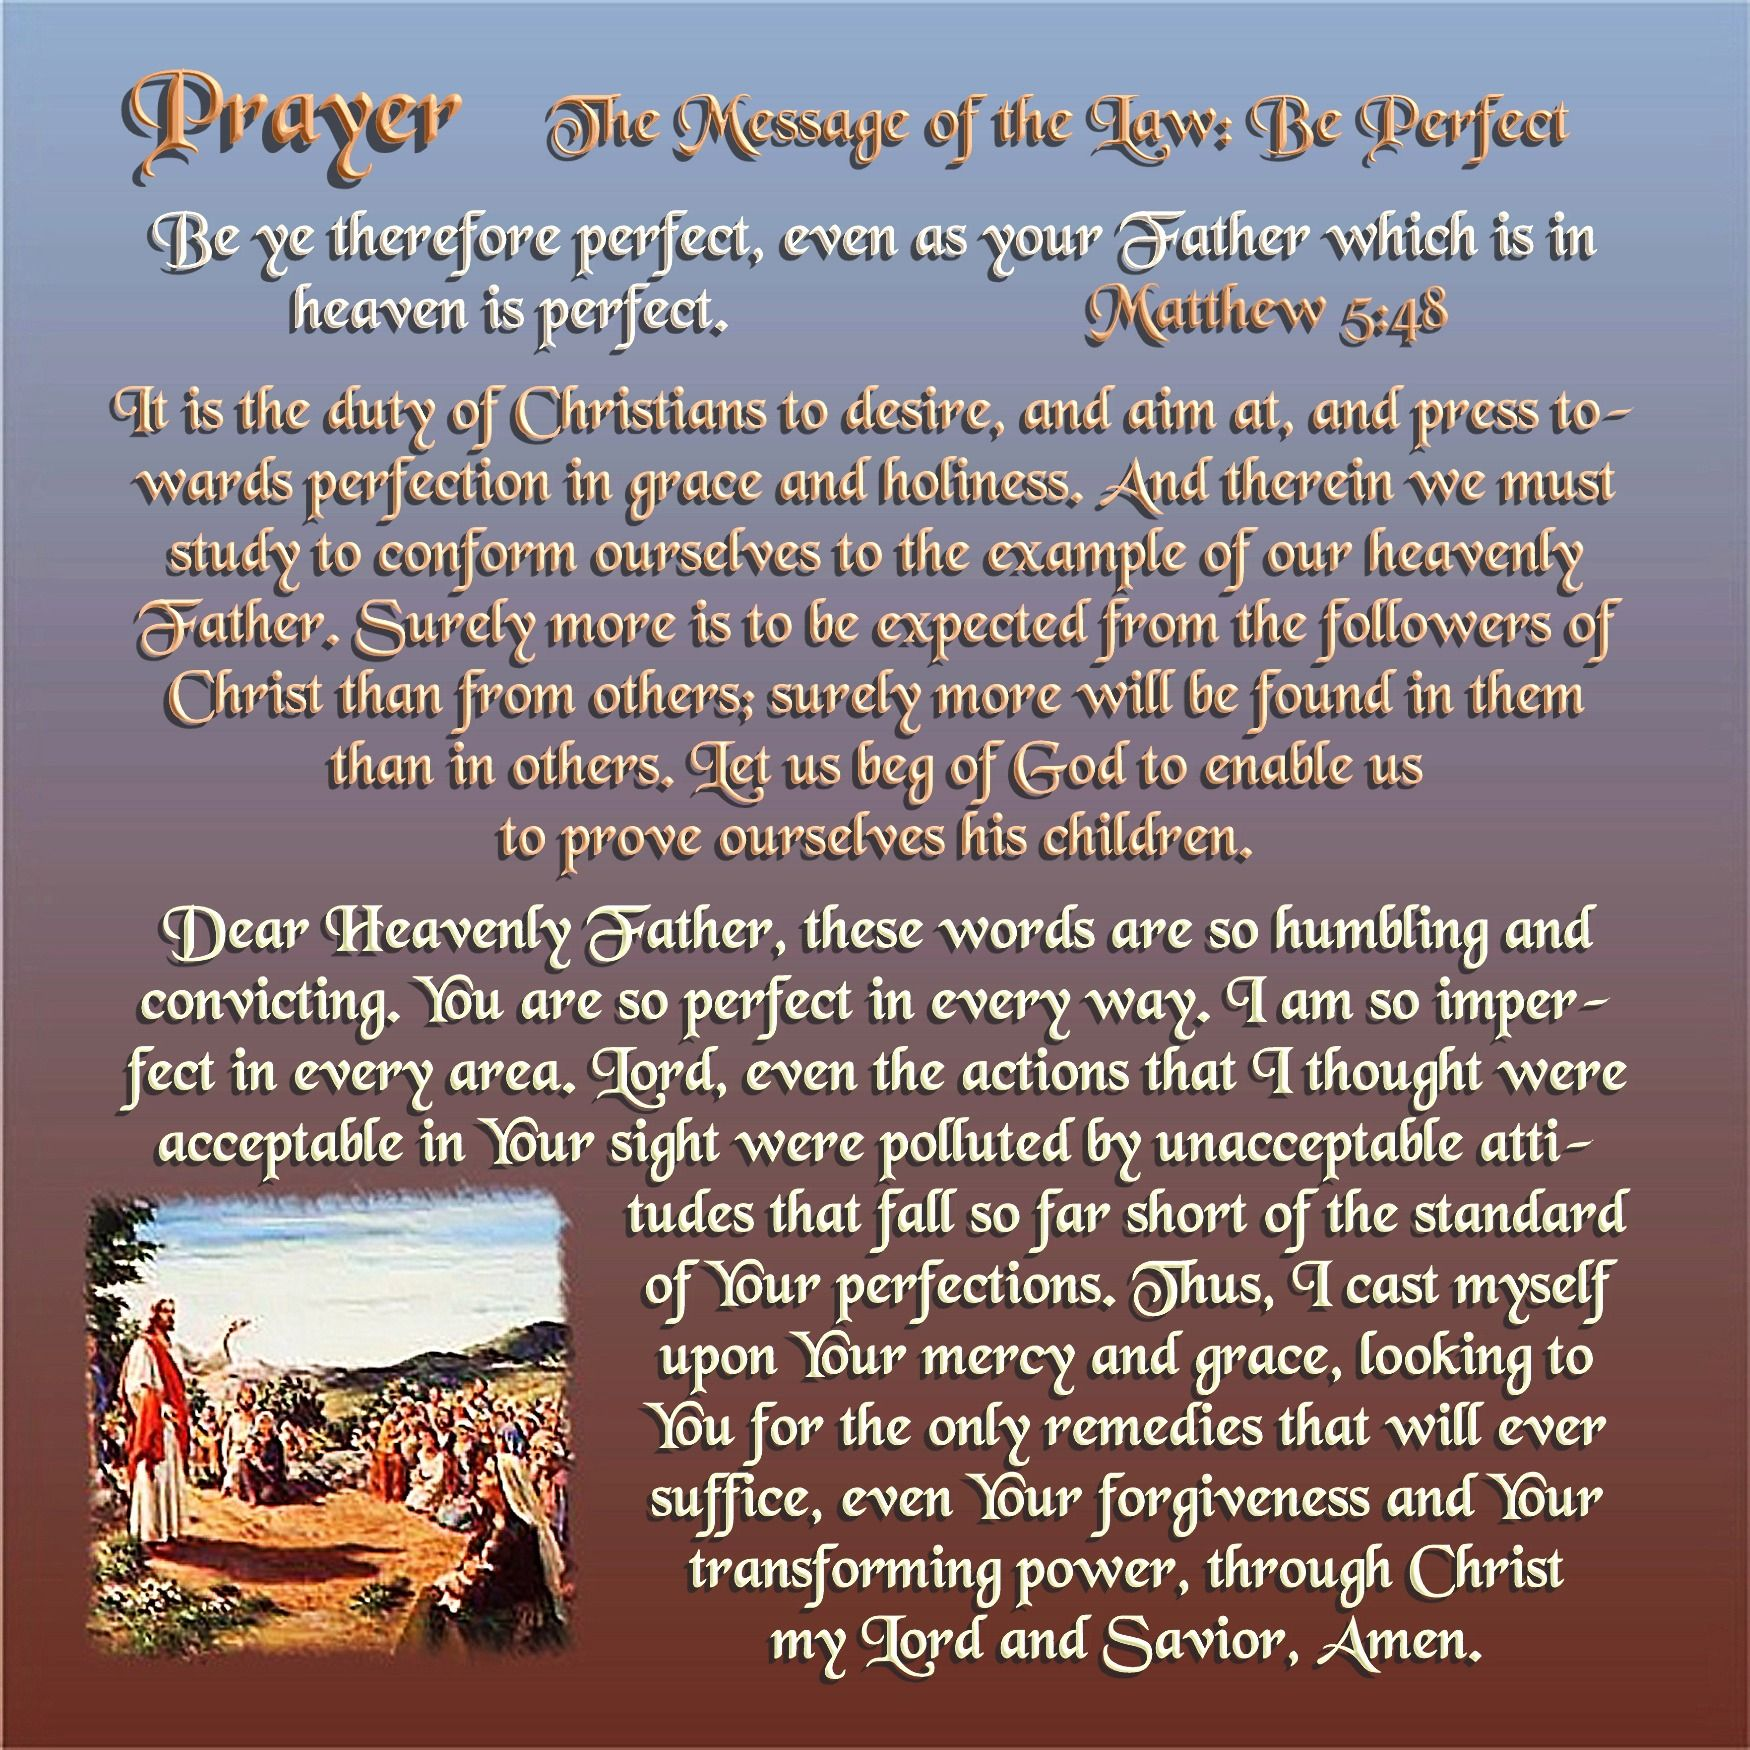 Today's Prayer The Message of the Law Be Perfect